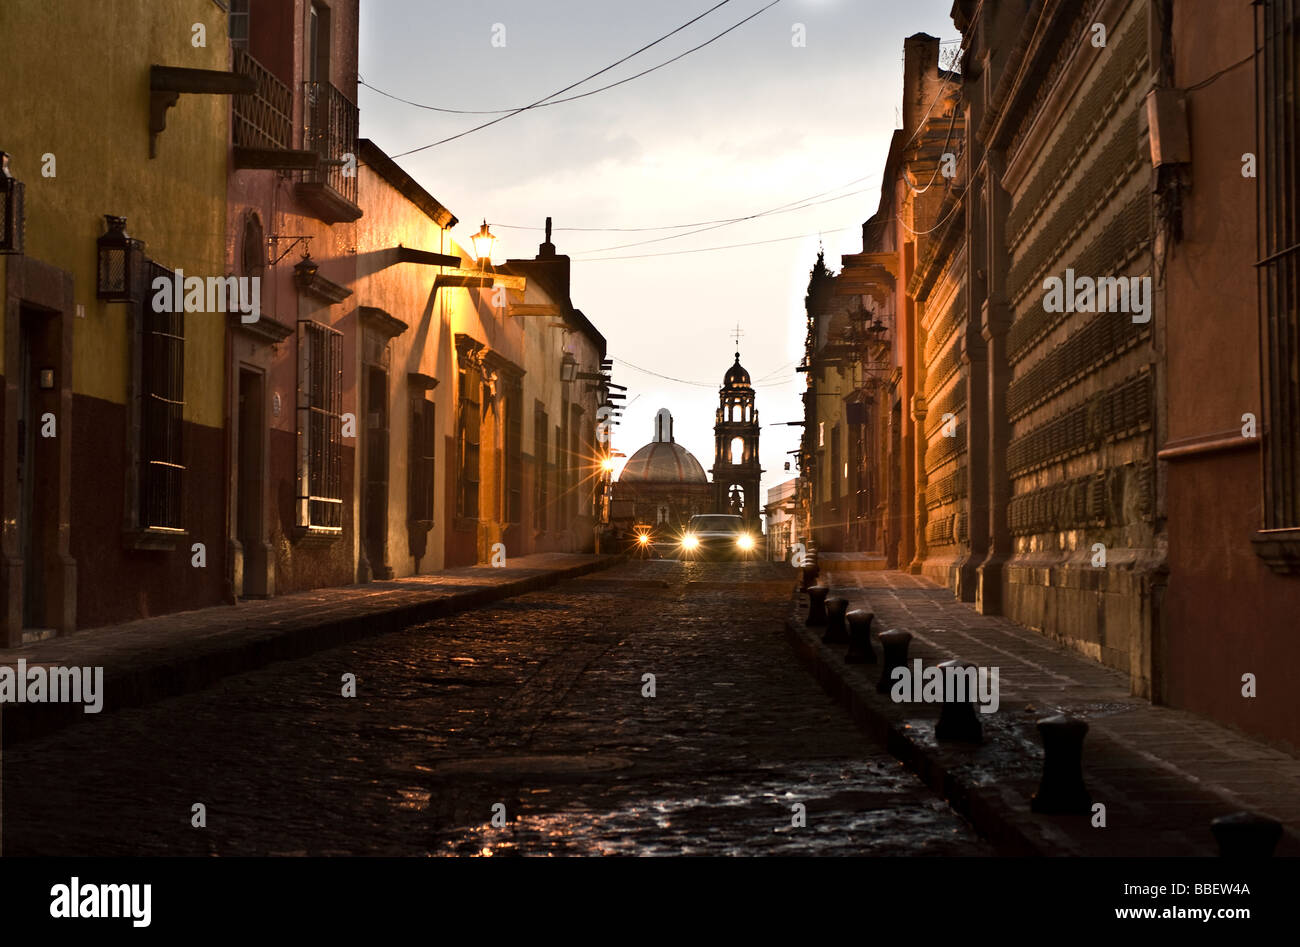 Car Driving at Night, Church of San Francisco in the background, San Miguel de Allende, Guanajuato, Mexico - Stock Image